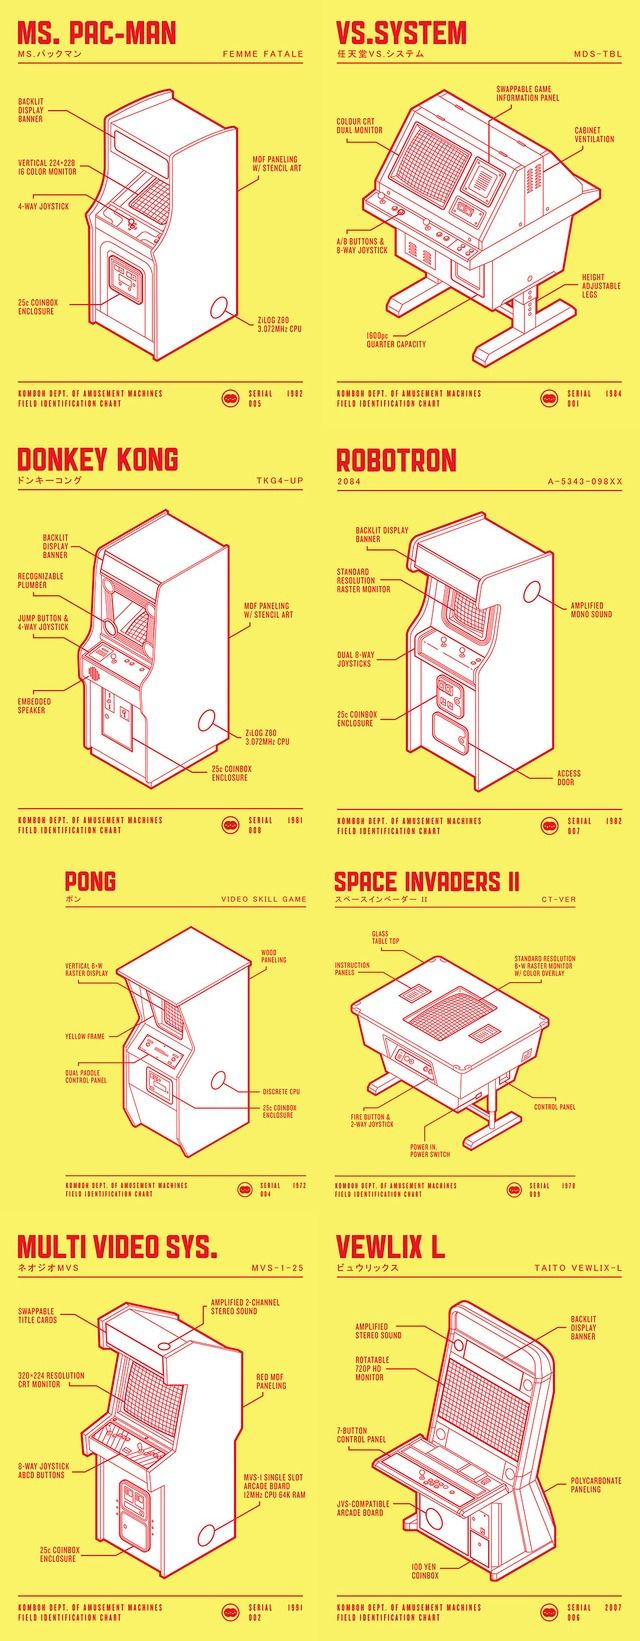 Classic Arcade Game Designs Illustrated as a Field Guide